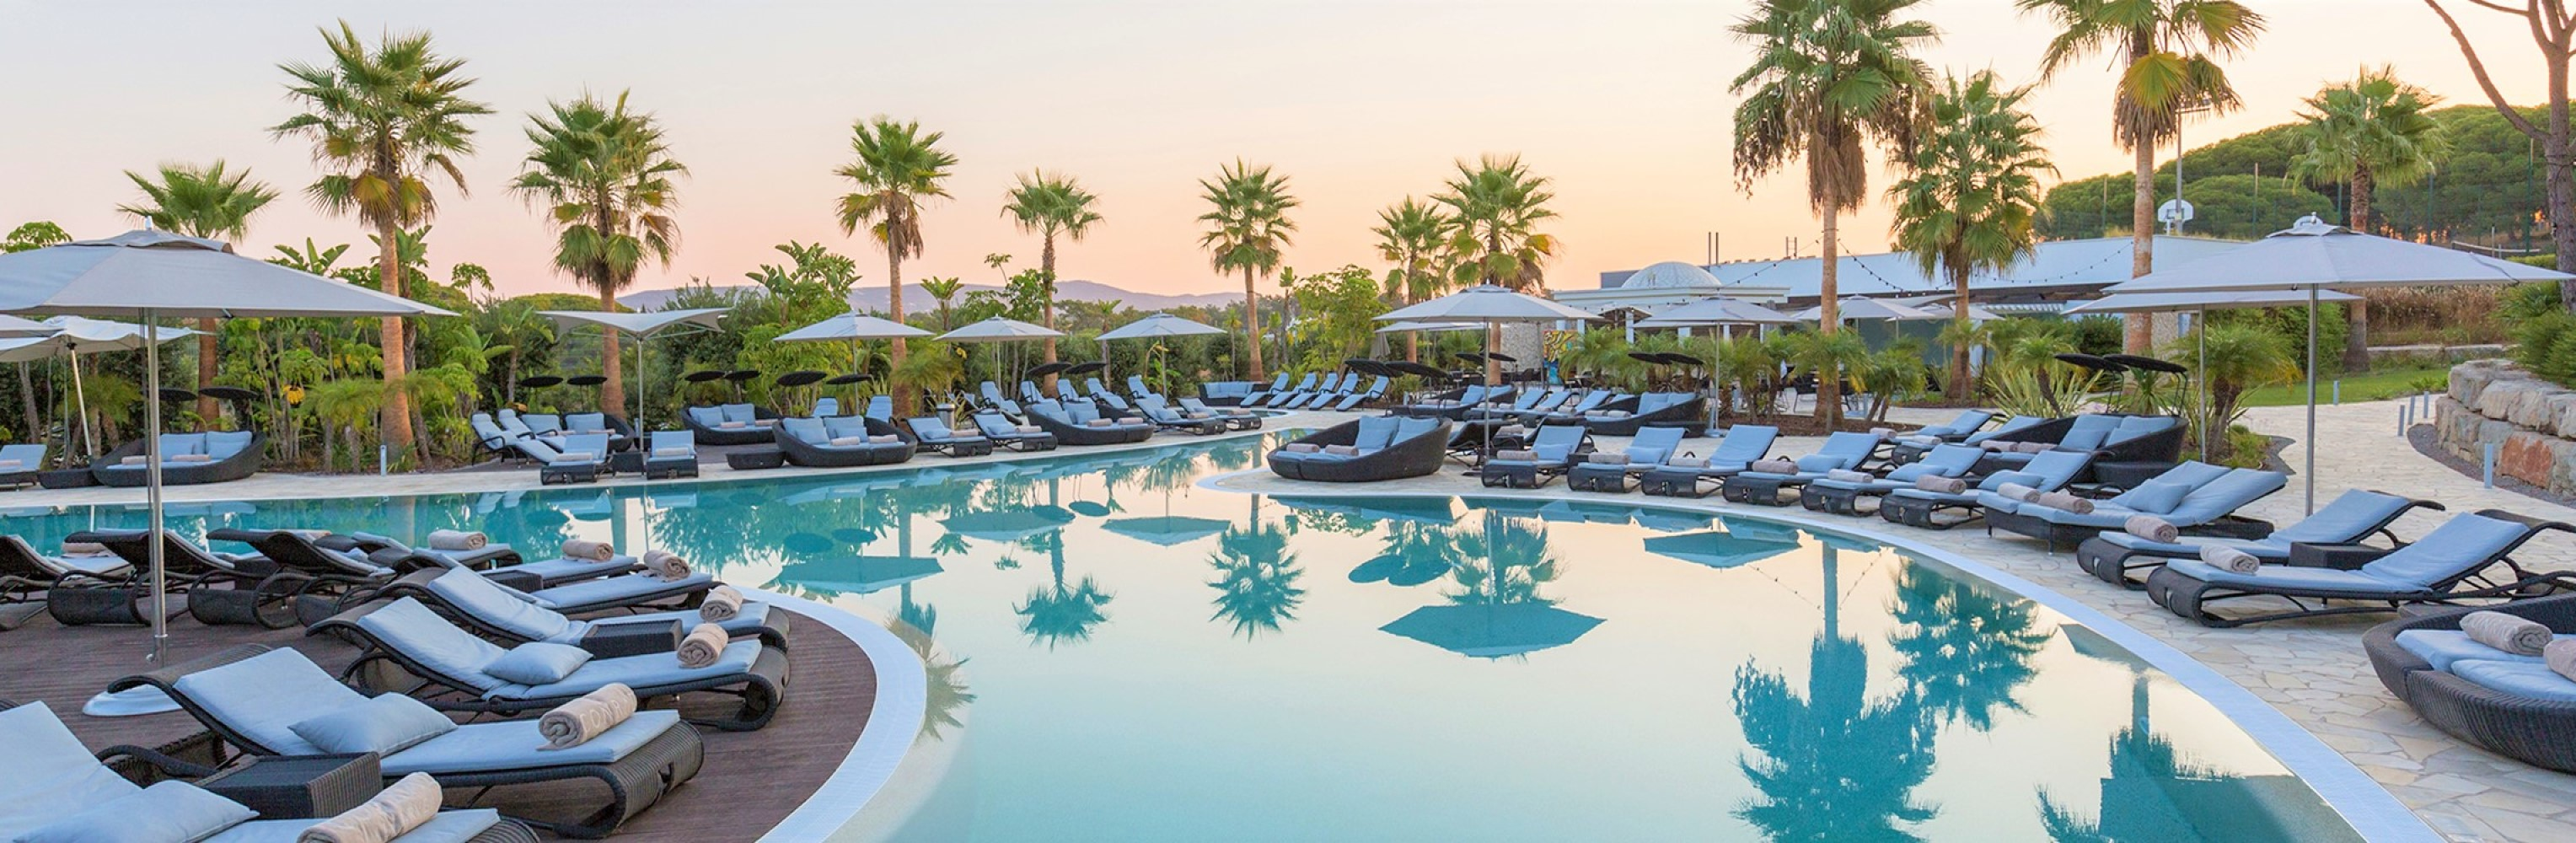 Discovery & Wellness Escape in the Algarve, Portugal